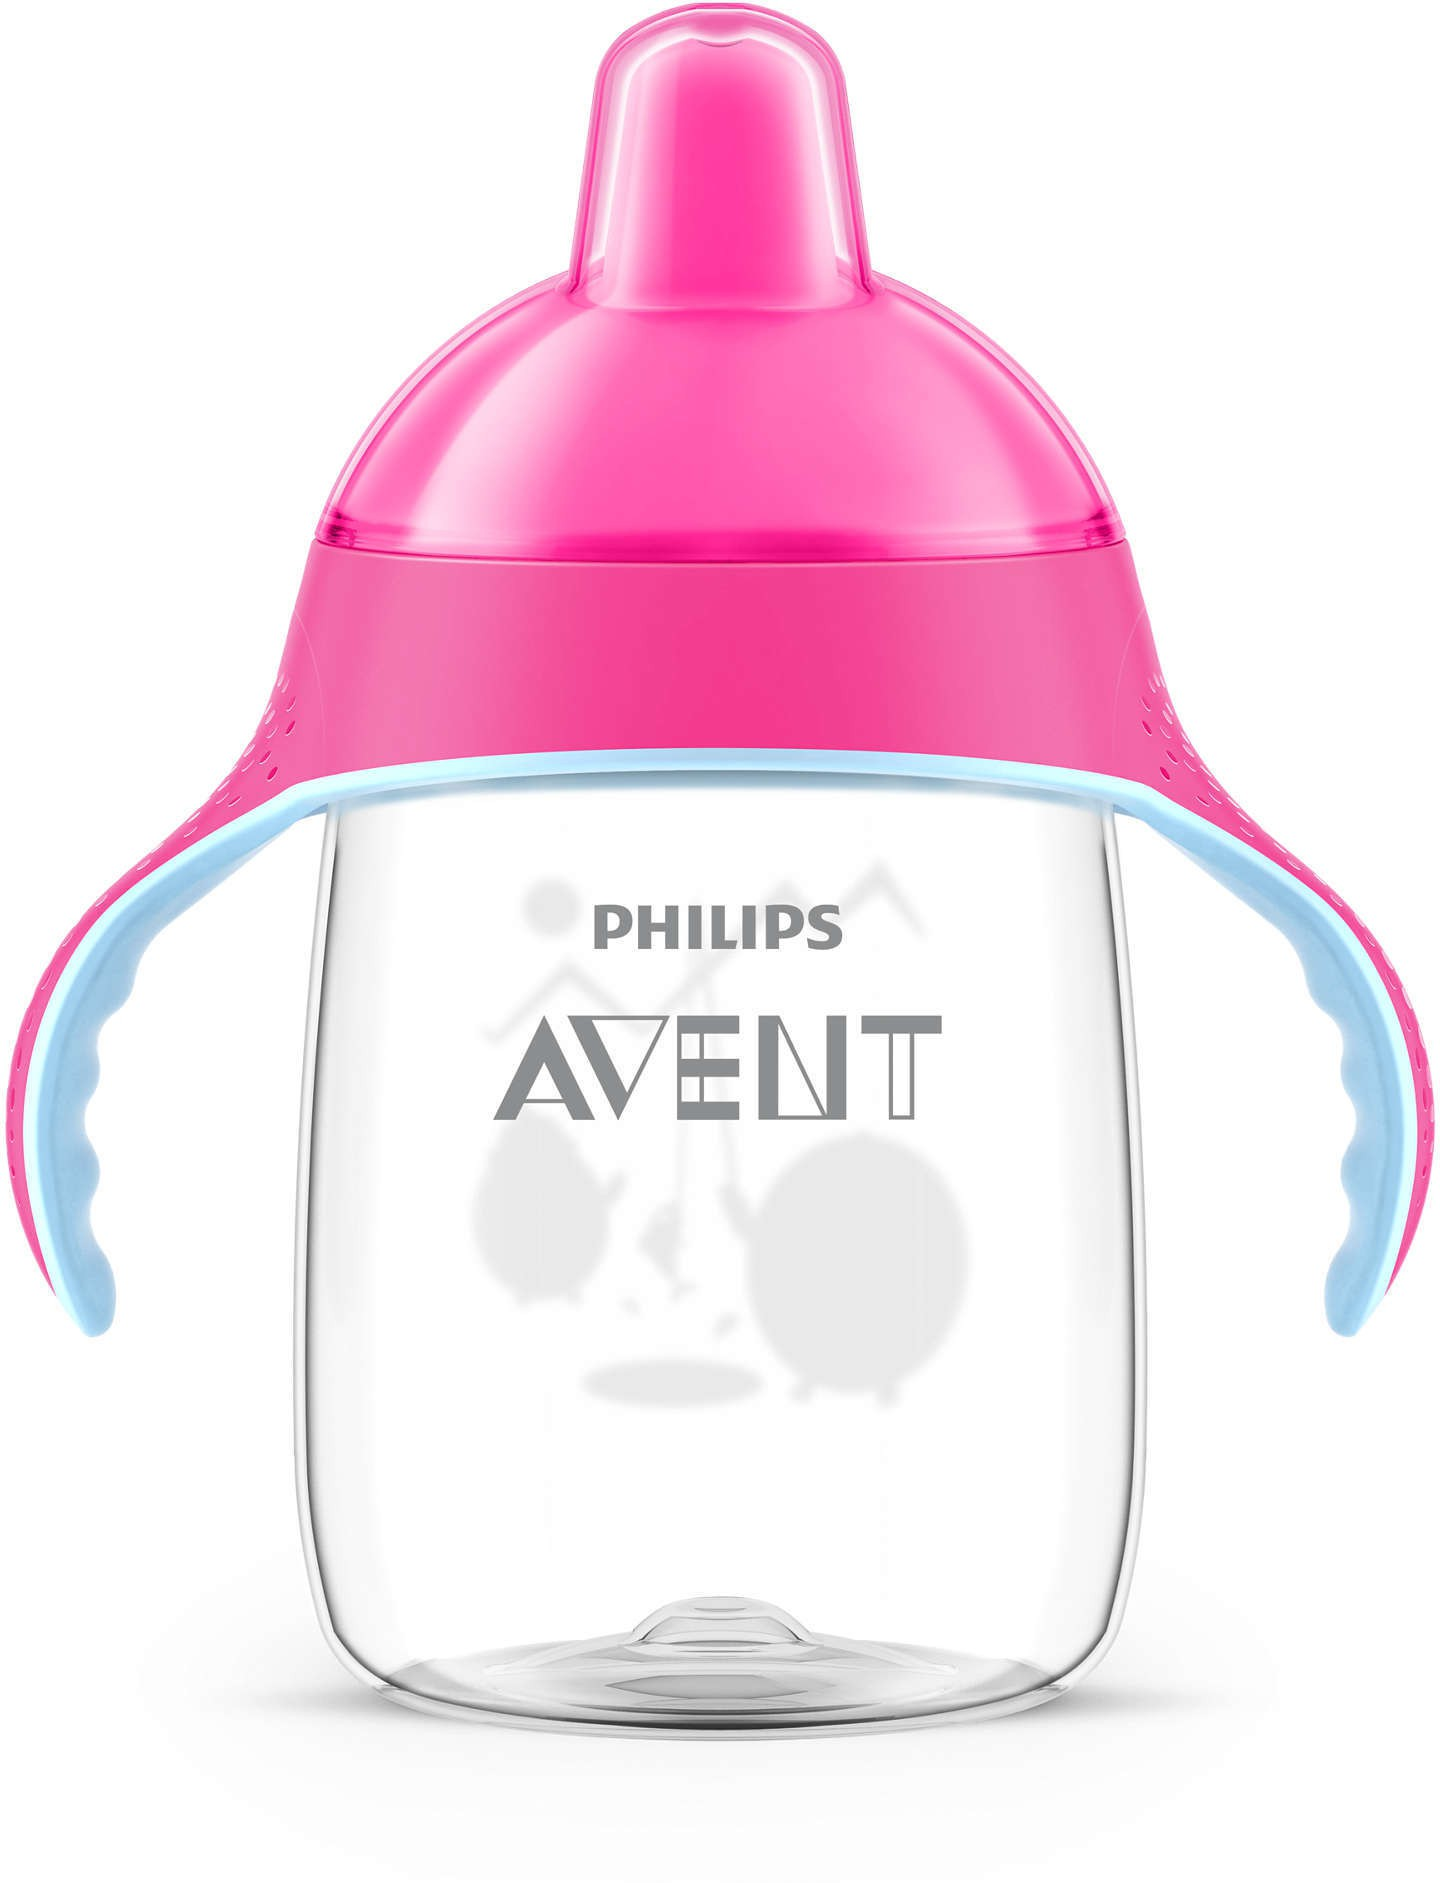 Deals | Philips Avent Feeding Bottles, Spout Cups...